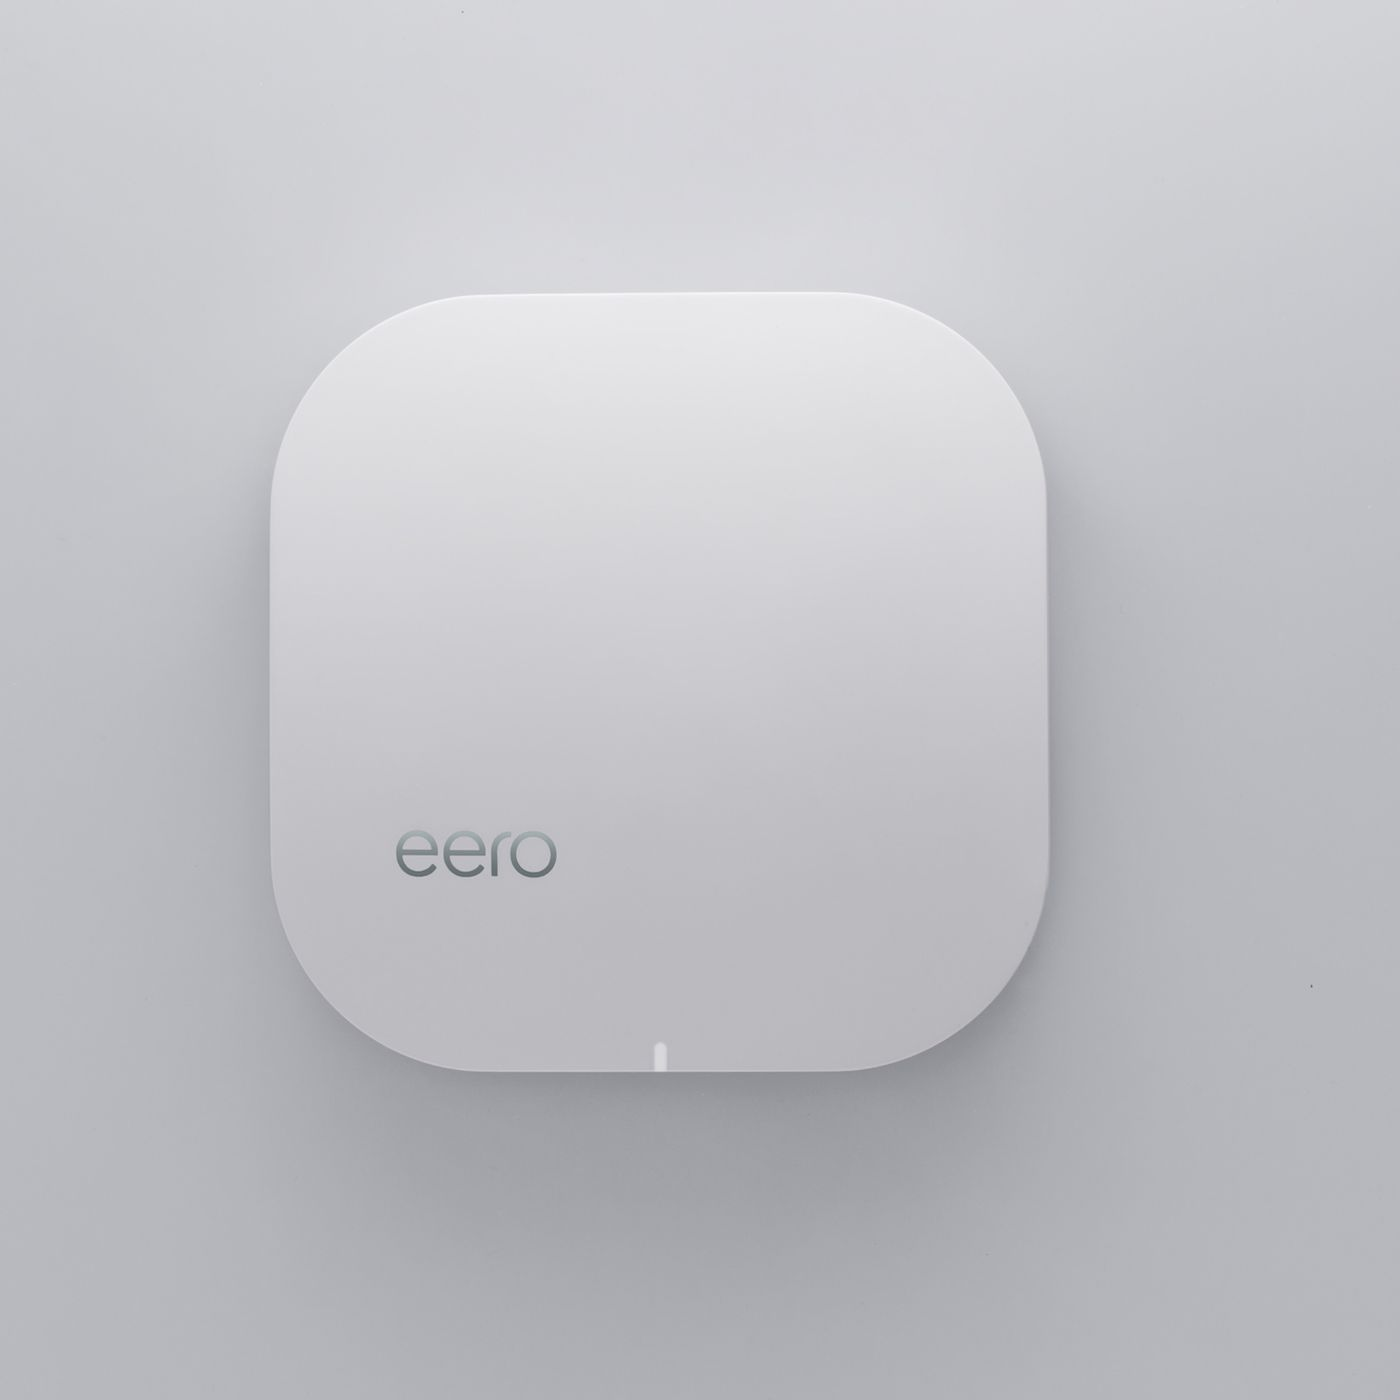 theverge.com - Chris Welch - Amazon is buying mesh router company Eero